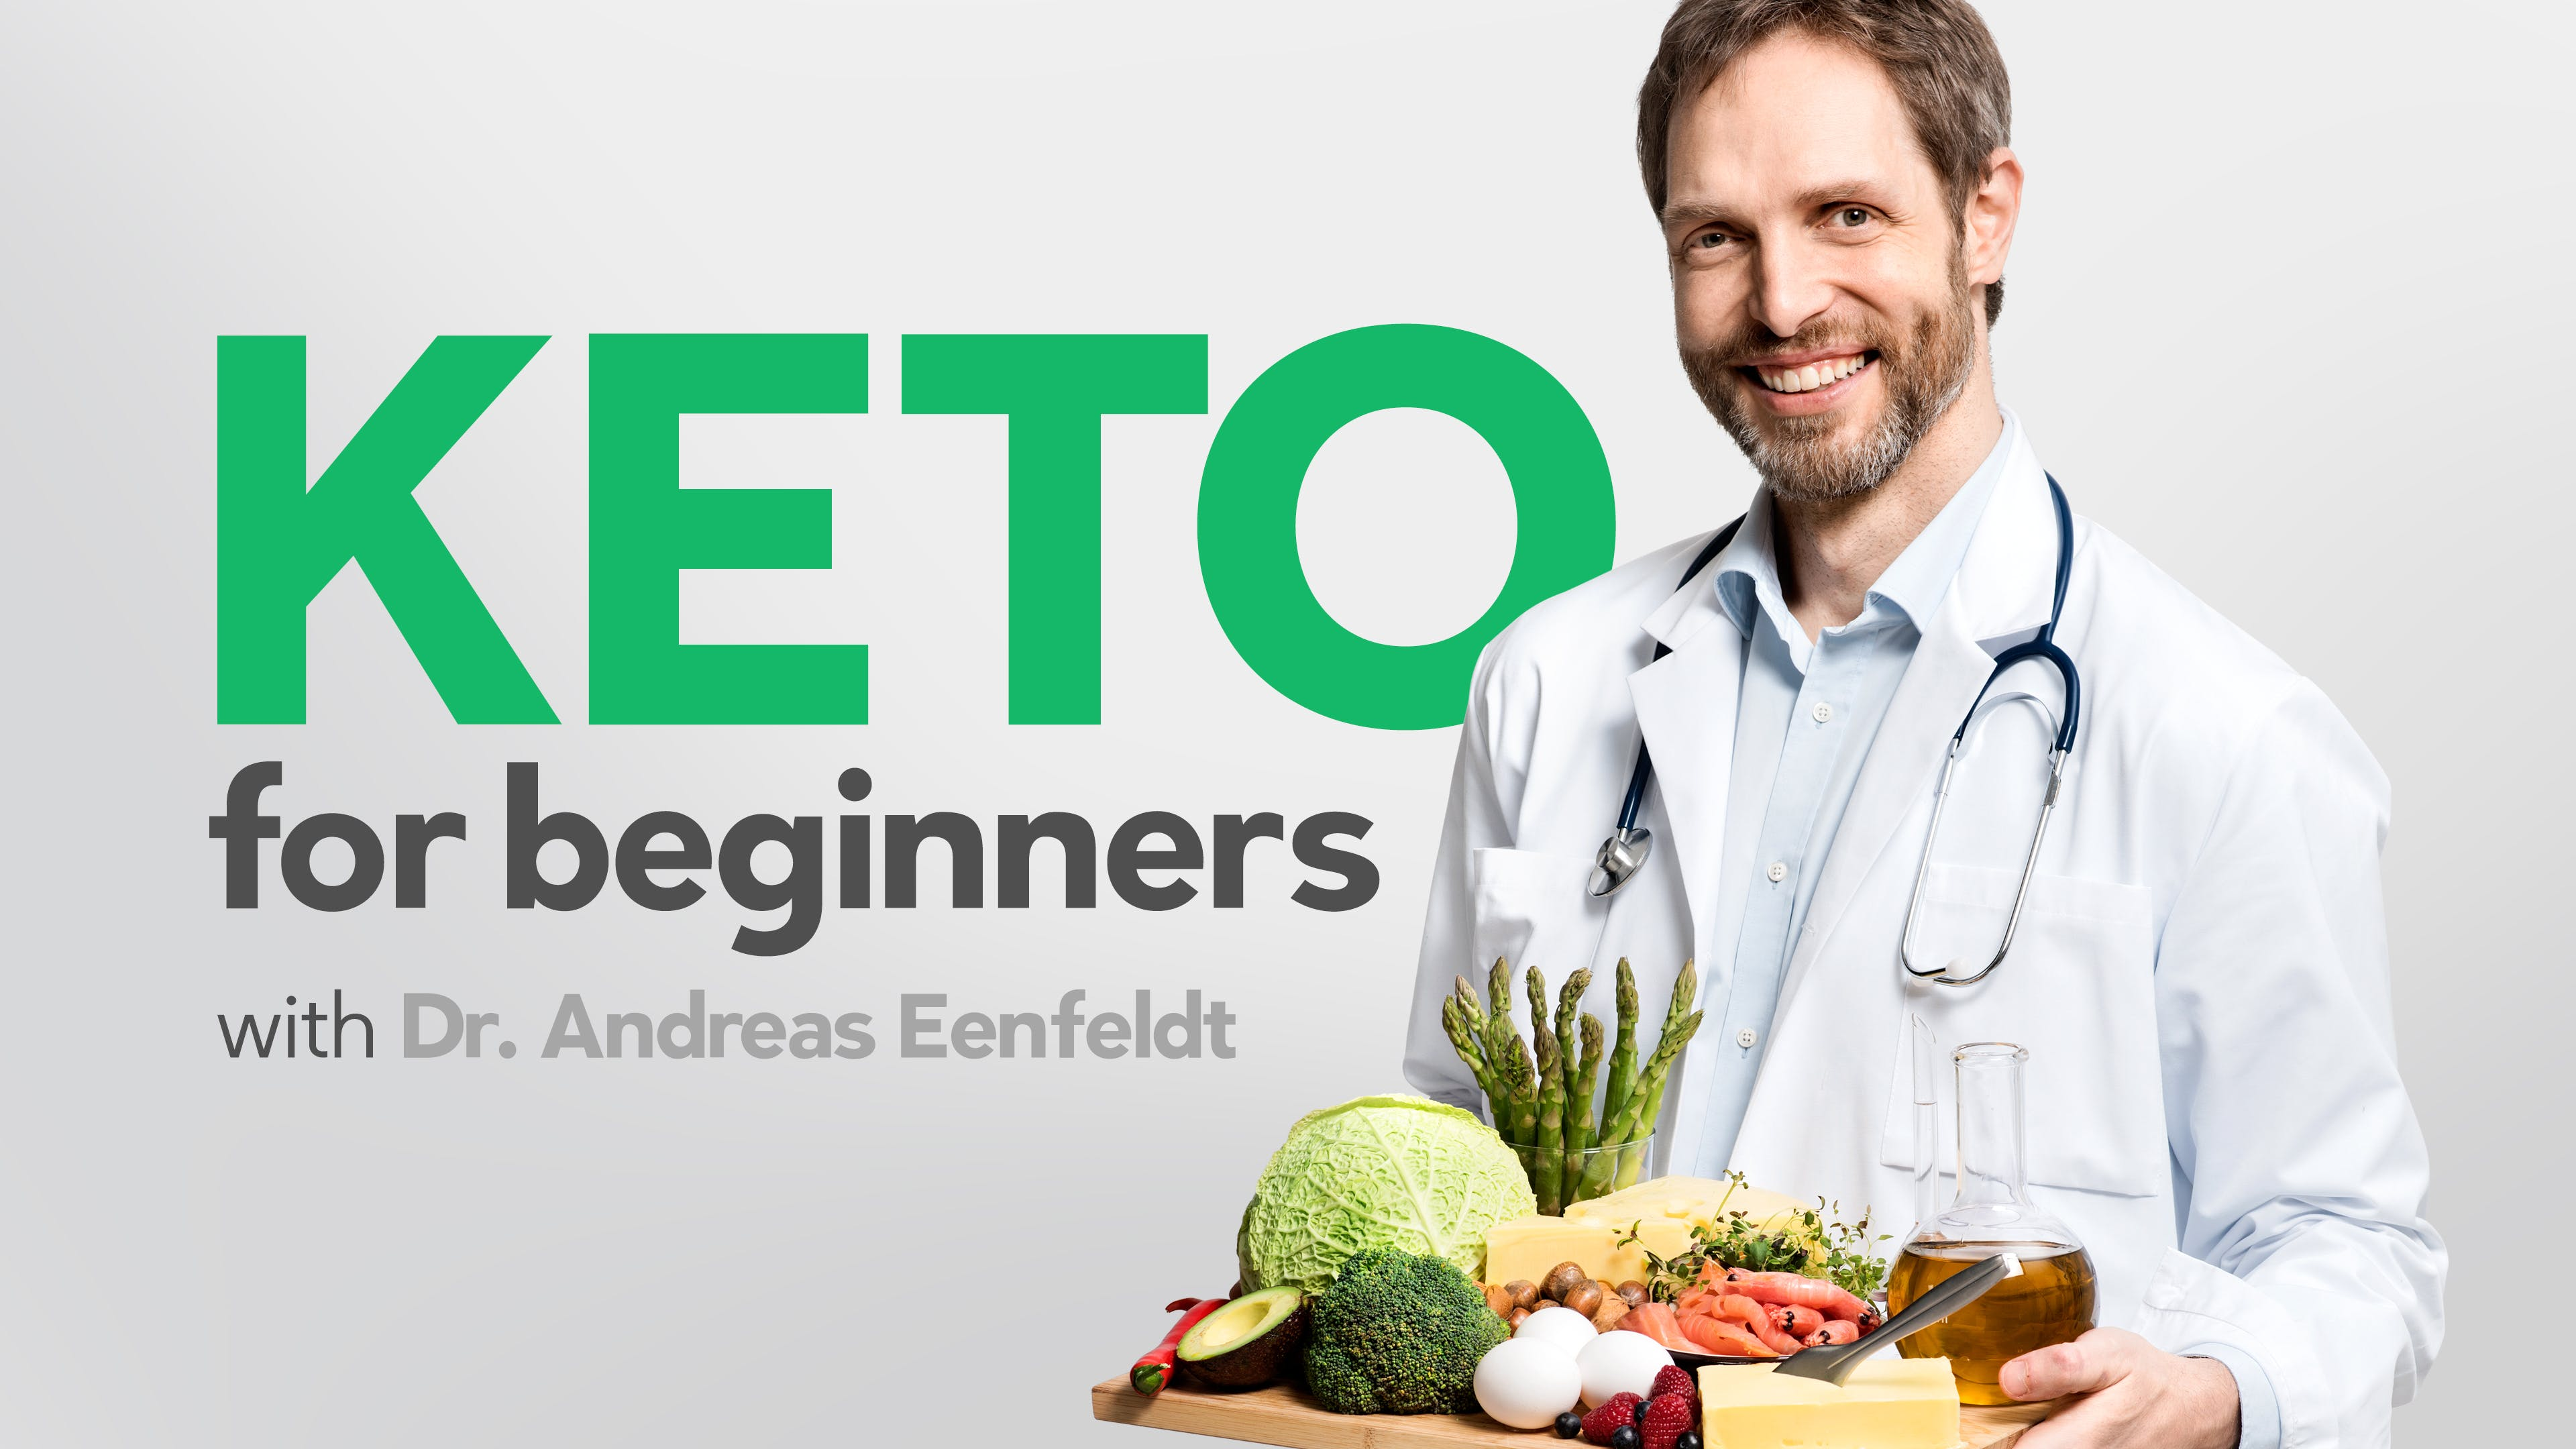 keto diet video course  u2013 learn how to do keto right  u2013 diet